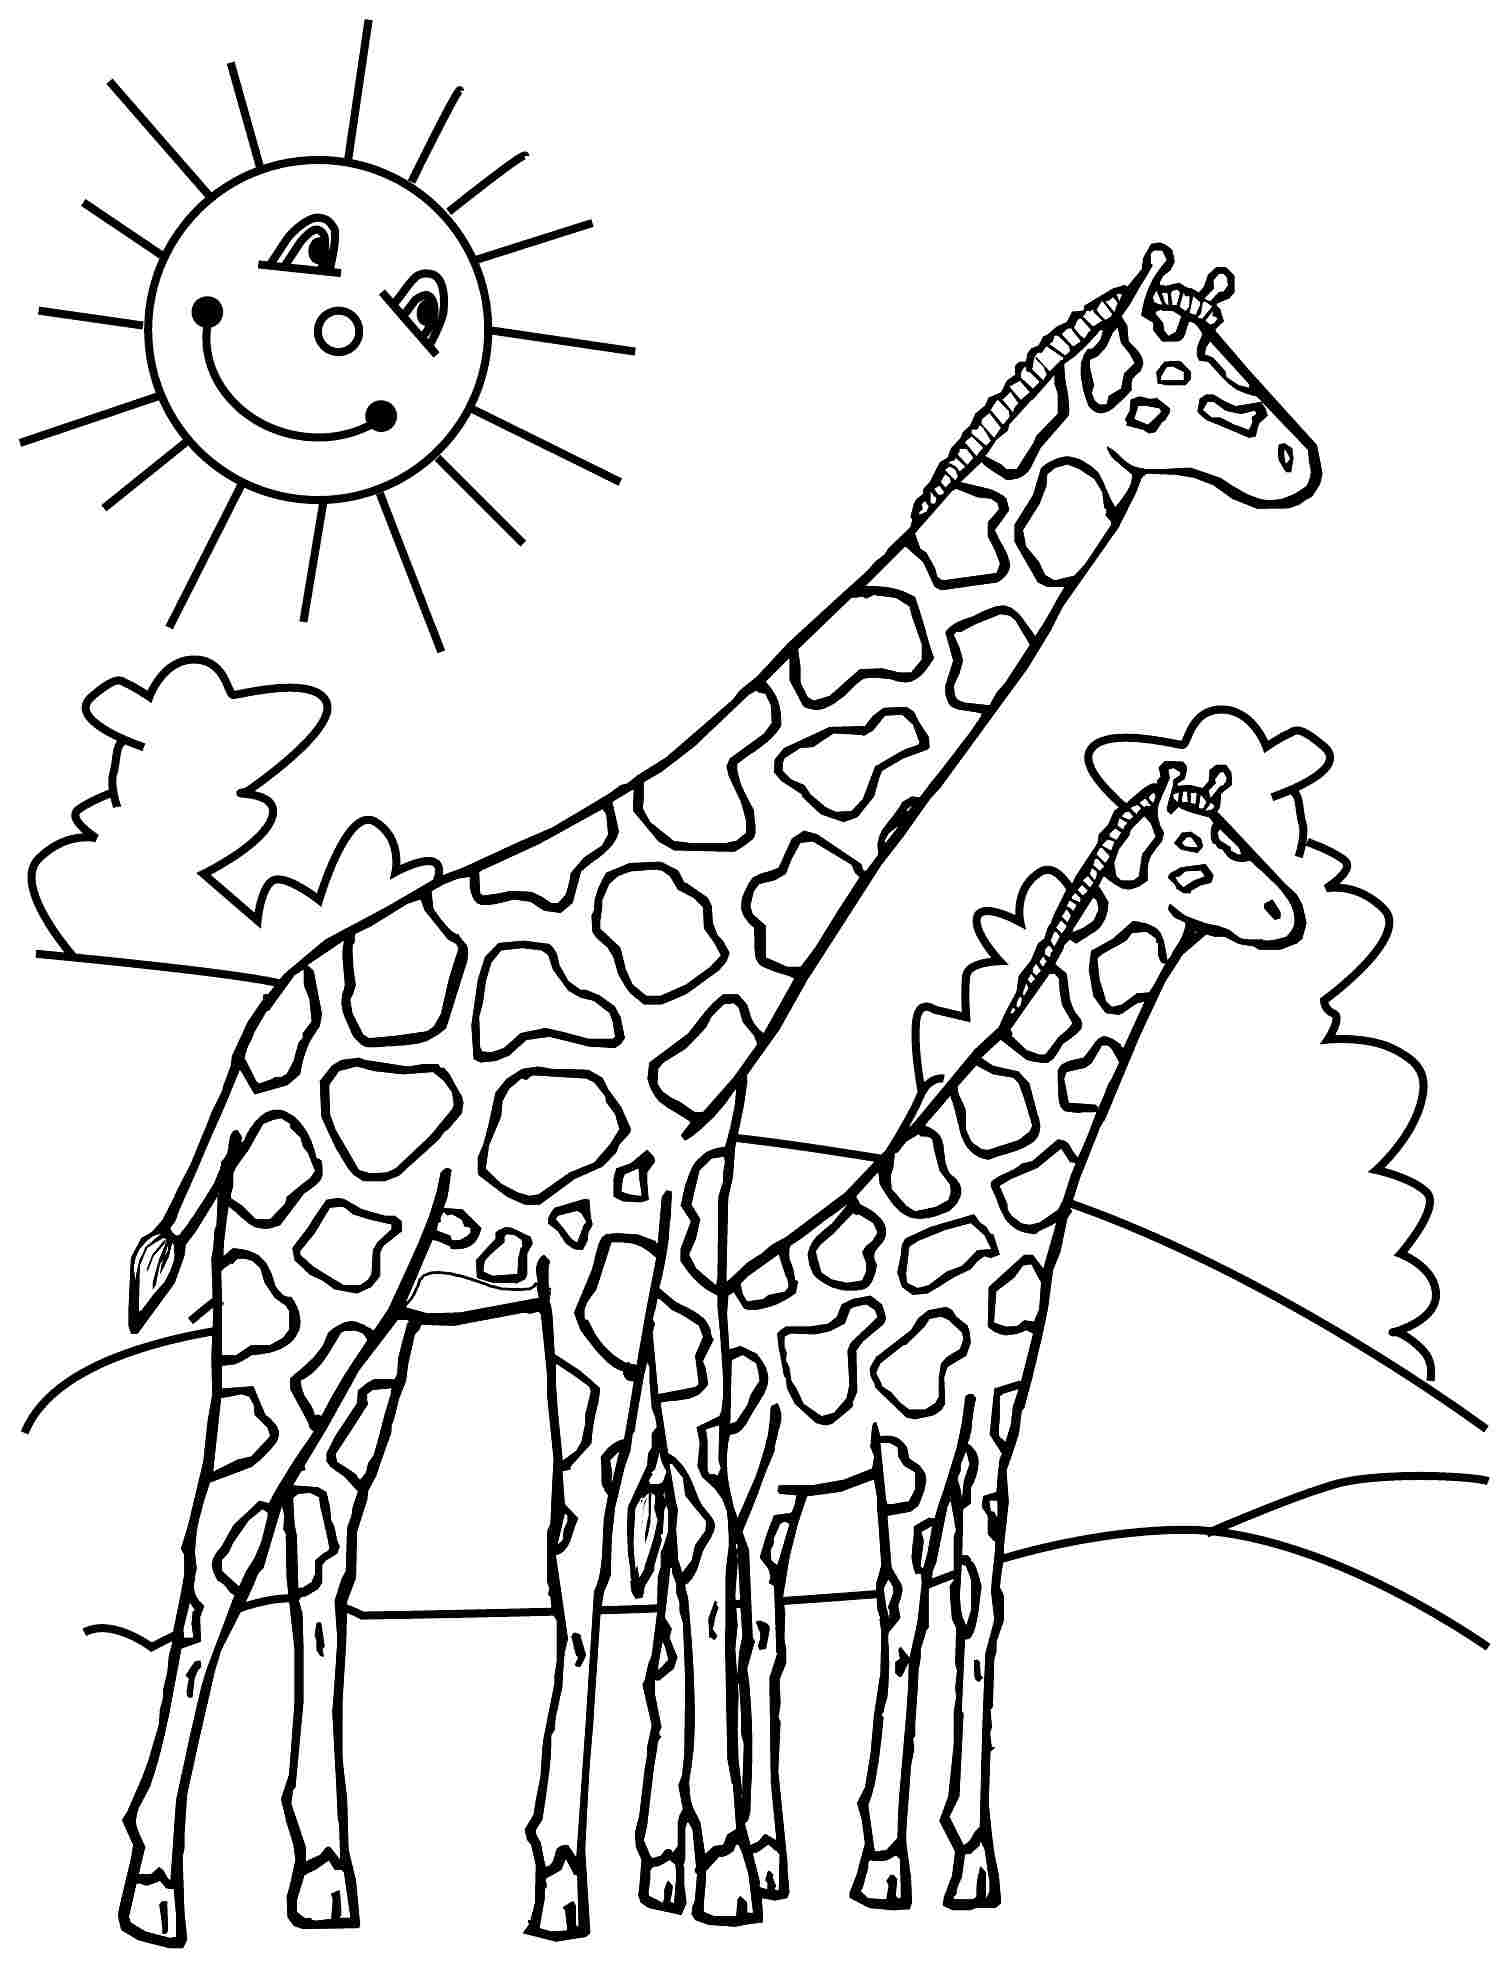 coloring picture printable giraffes coloring pages to download and print for free picture printable coloring